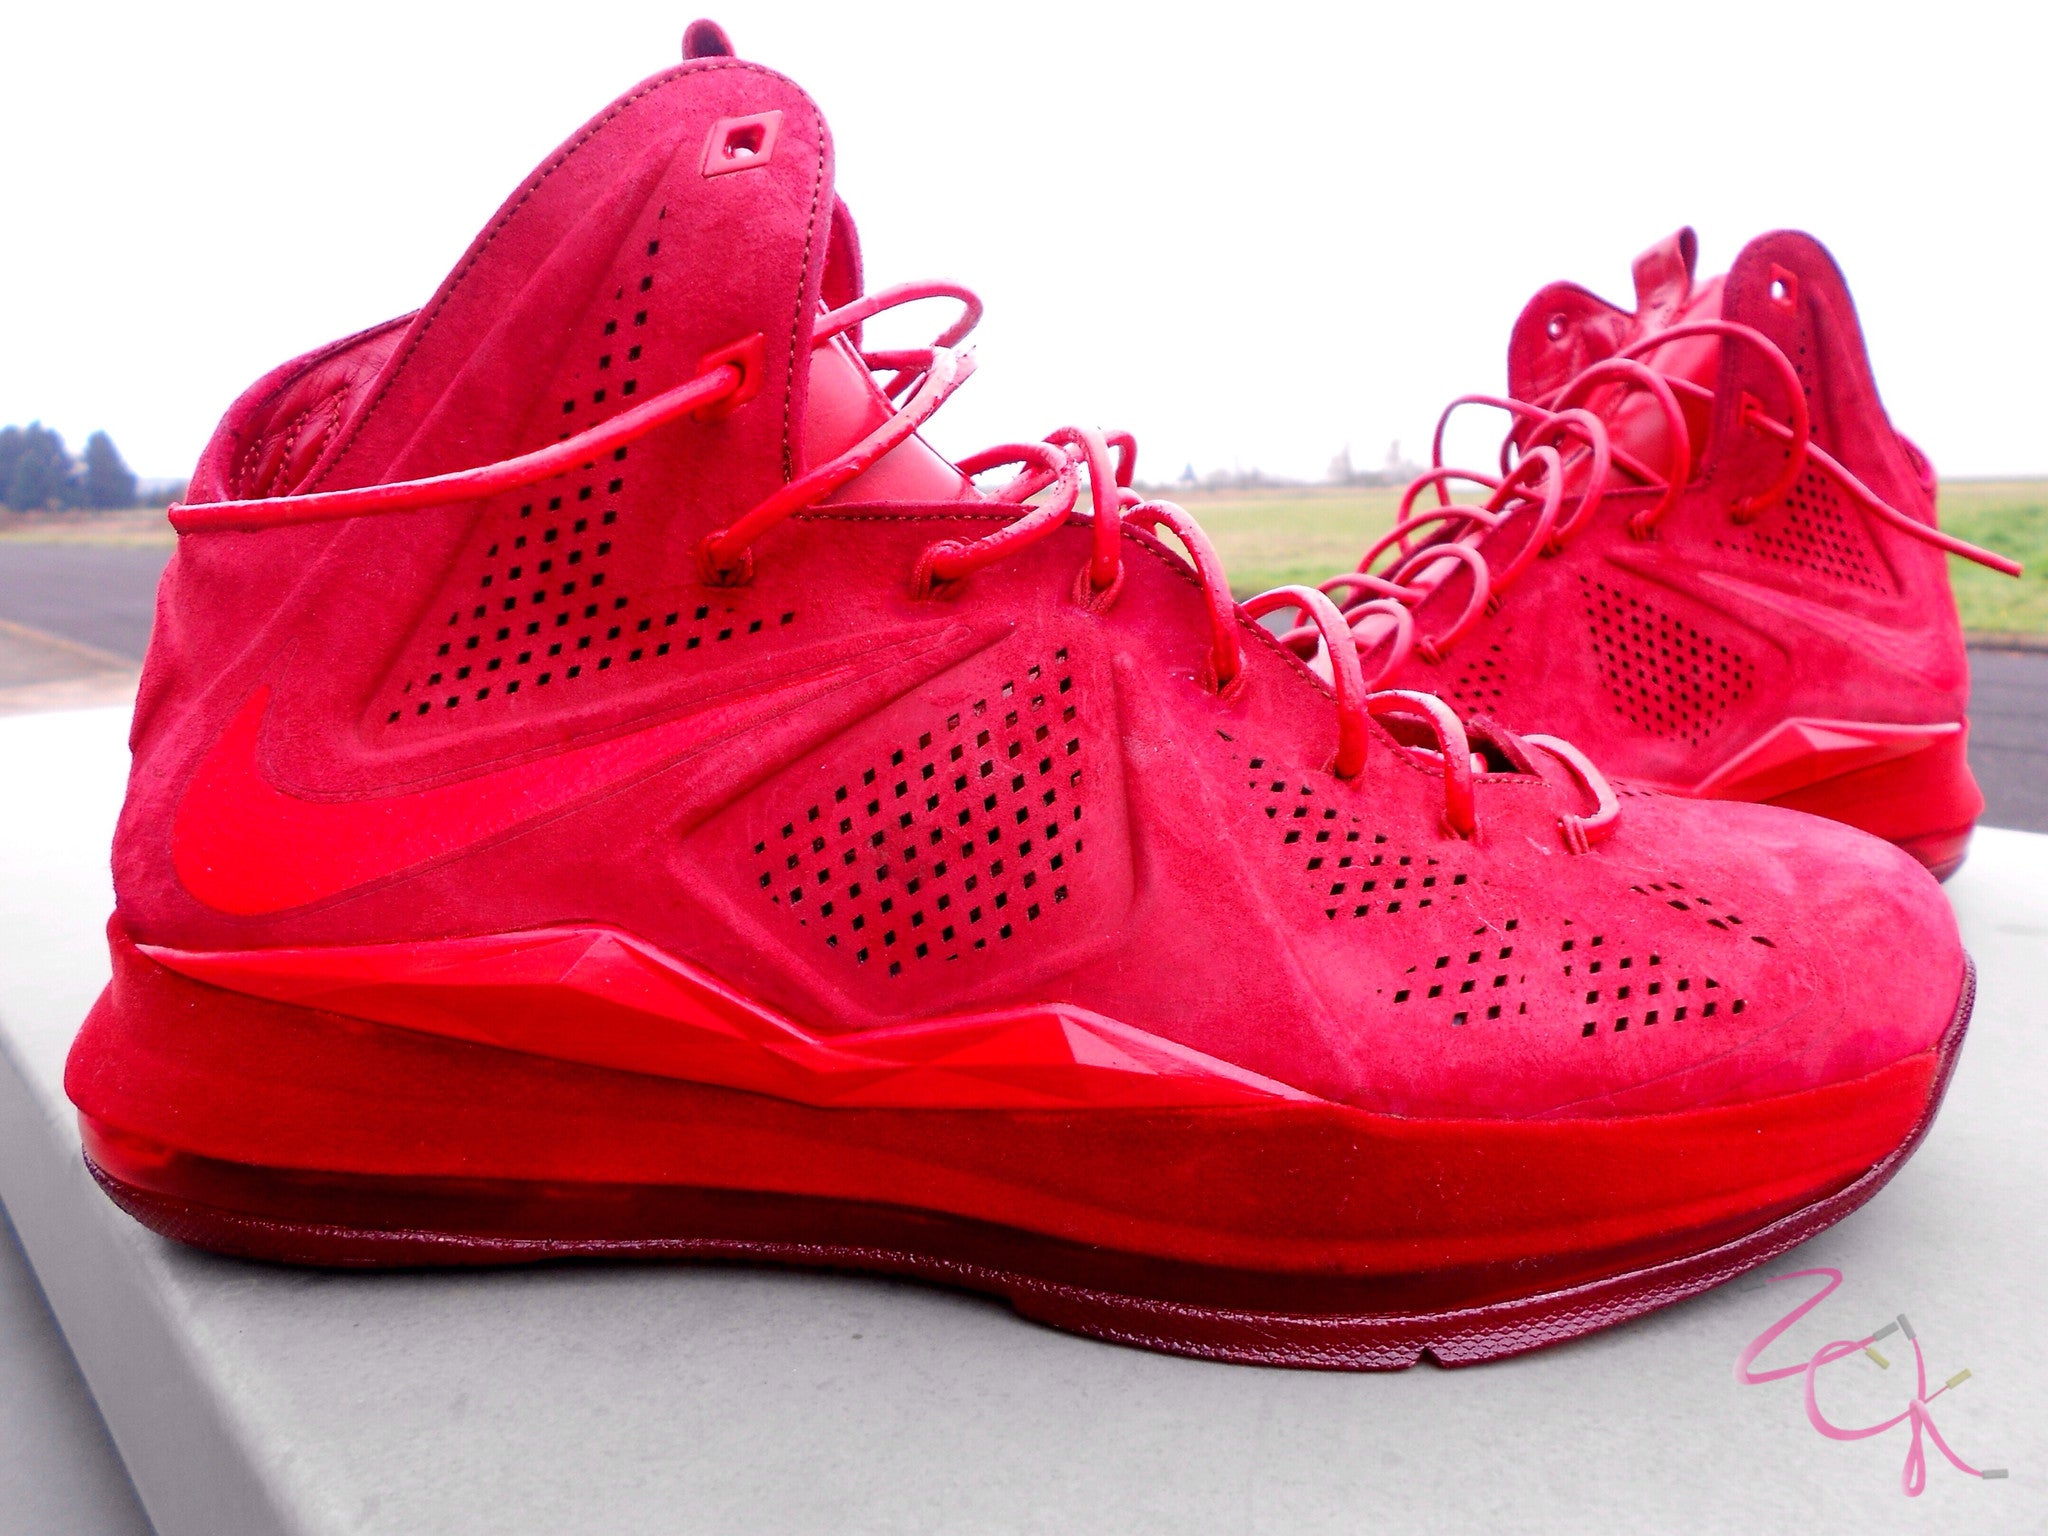 new style b3db9 4428d Custom Nike Lebron Suede EXT Red October   Zadehkicks